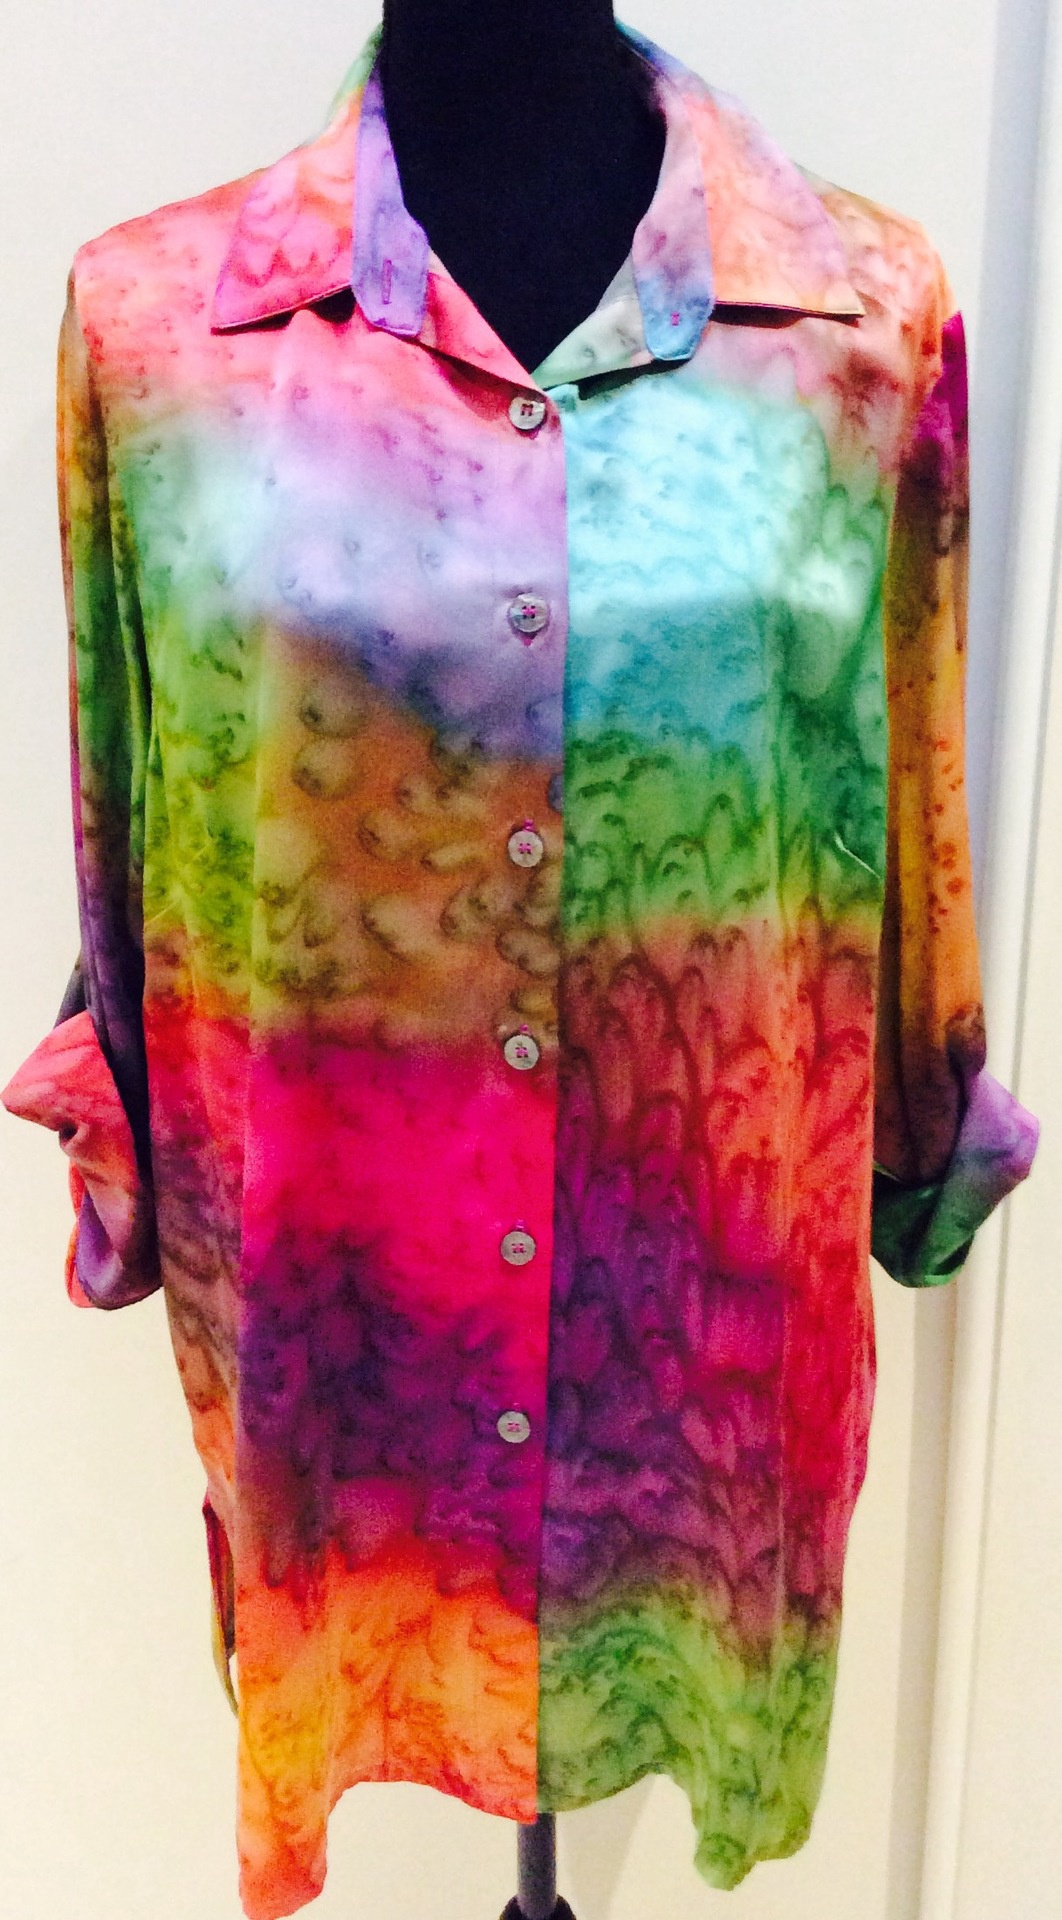 Hand Painted Pure Silk Shirt with adjustable sleeves - L